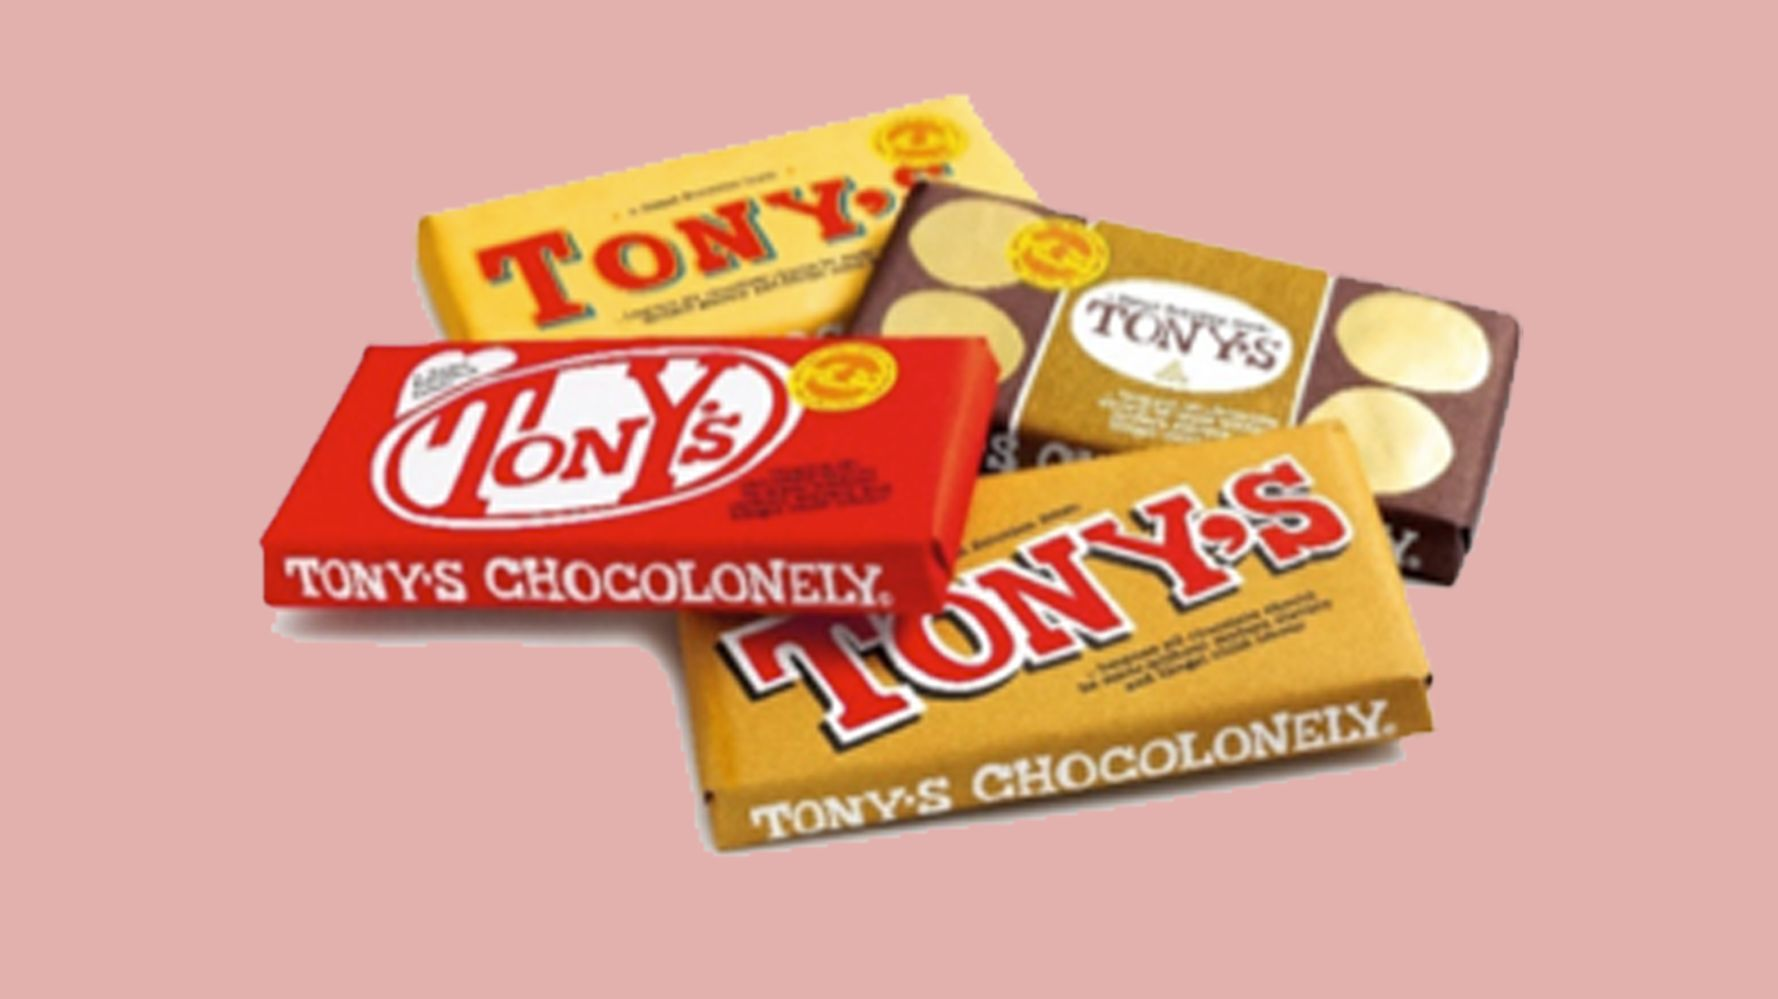 Scoffed: The Chocolate Bars That Disappeared After Just A Day